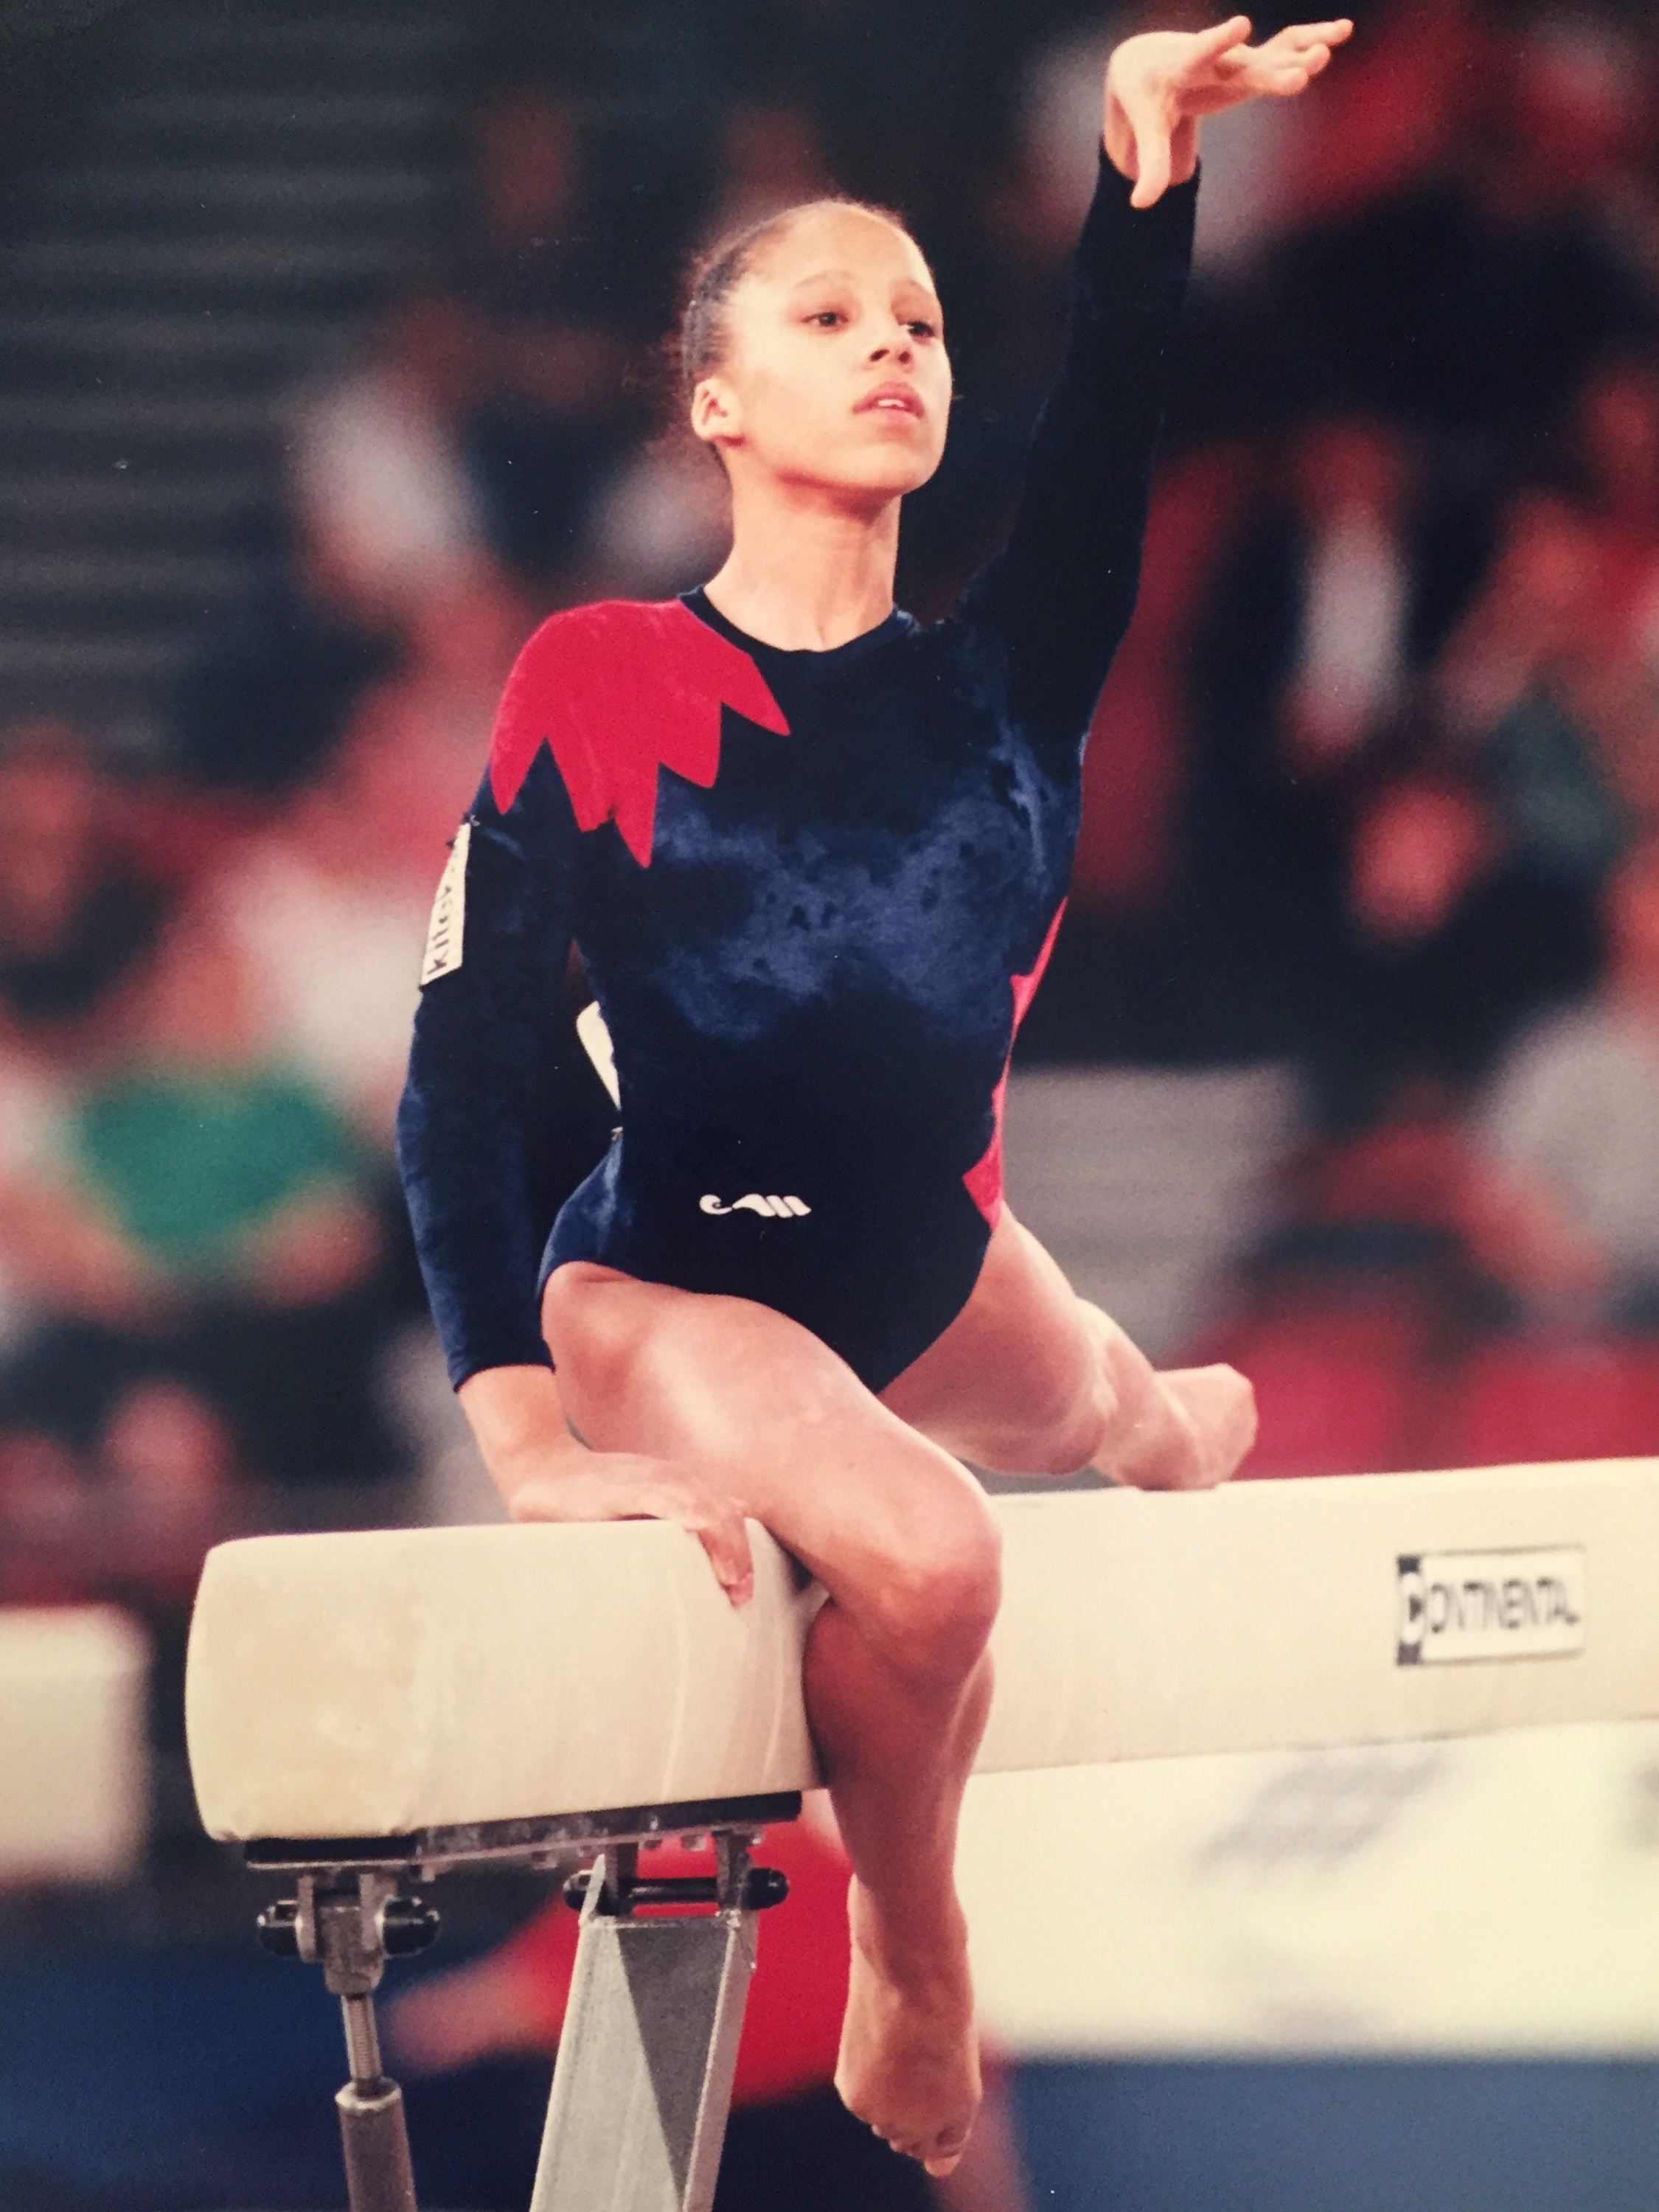 Zita Lusack gymnast performing on beam